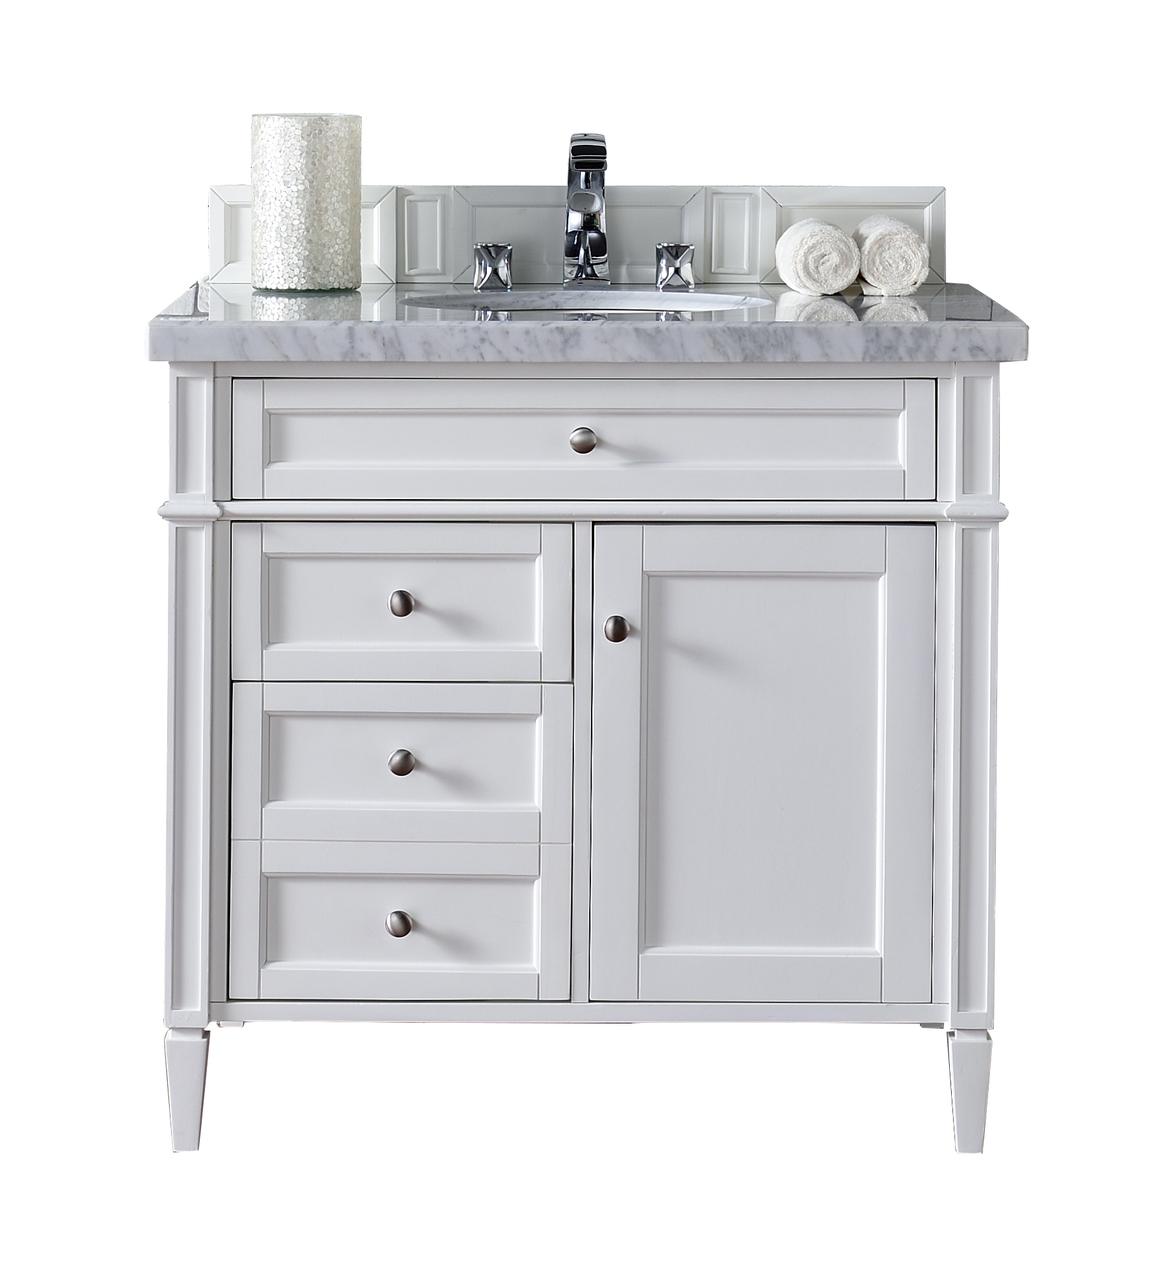 Bathroom Vanities Under 23 Inches Wide contemporary 36 inch single bathroom vanity white finish, no top